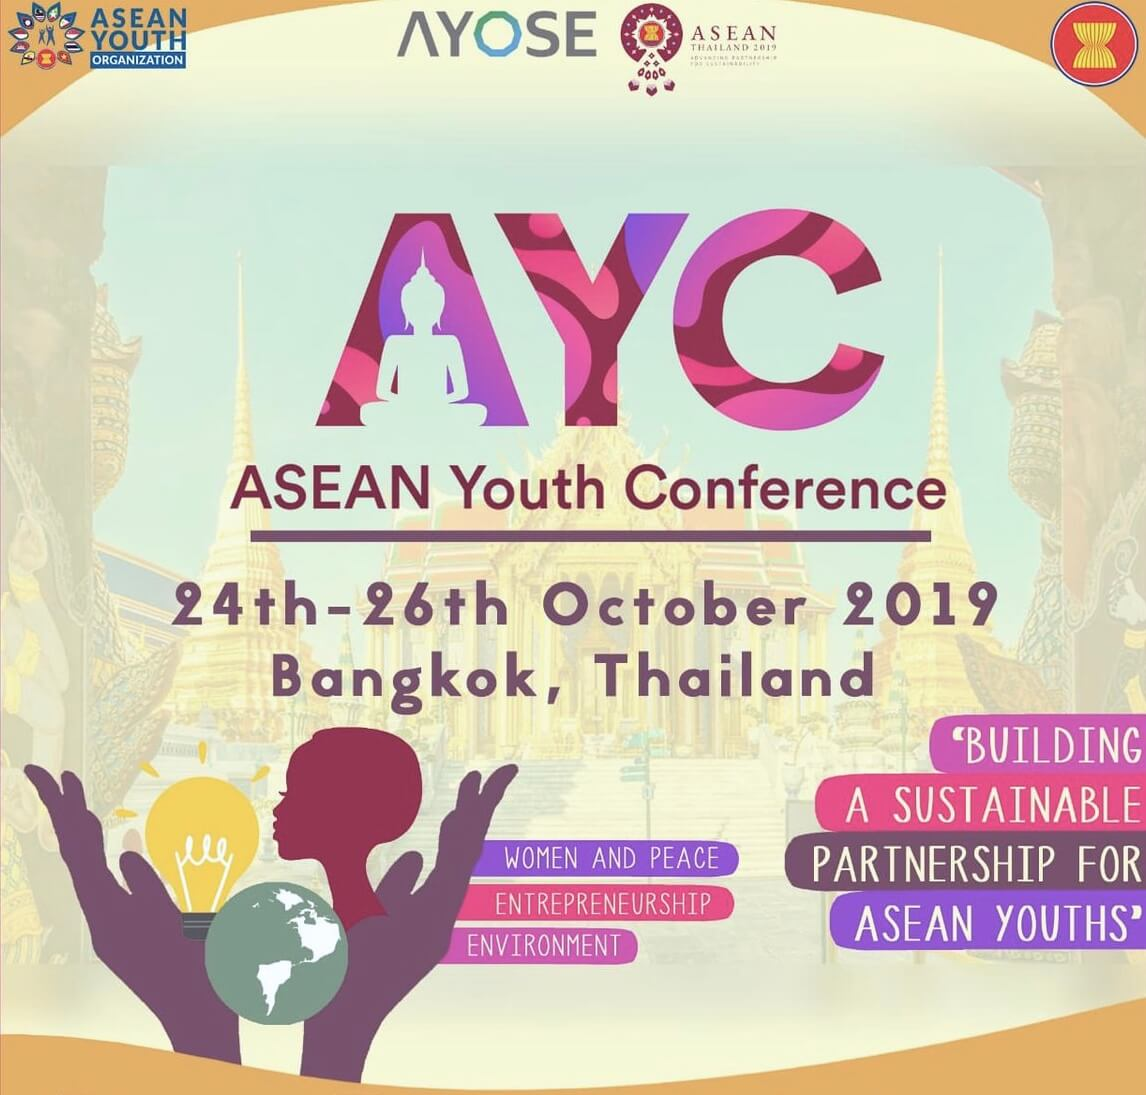 ASEAN Youth Conference 2019